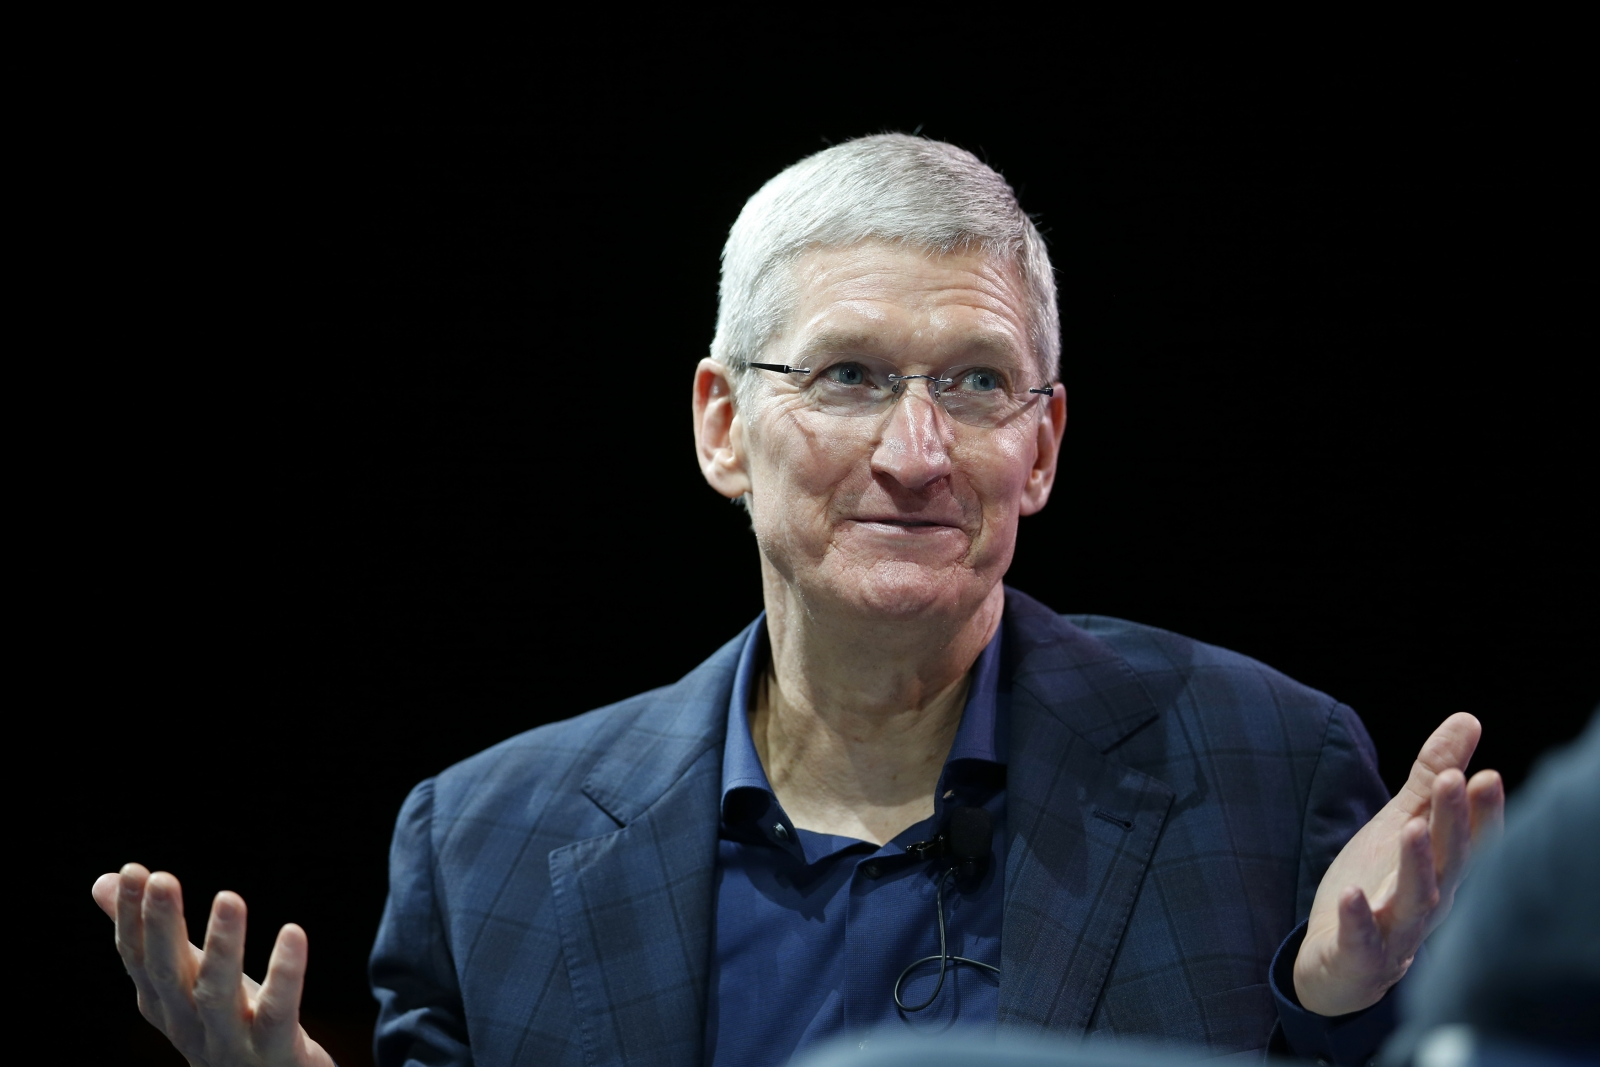 Tim Cook Confirms Apple Watch Battery Life Will Last Just One Day